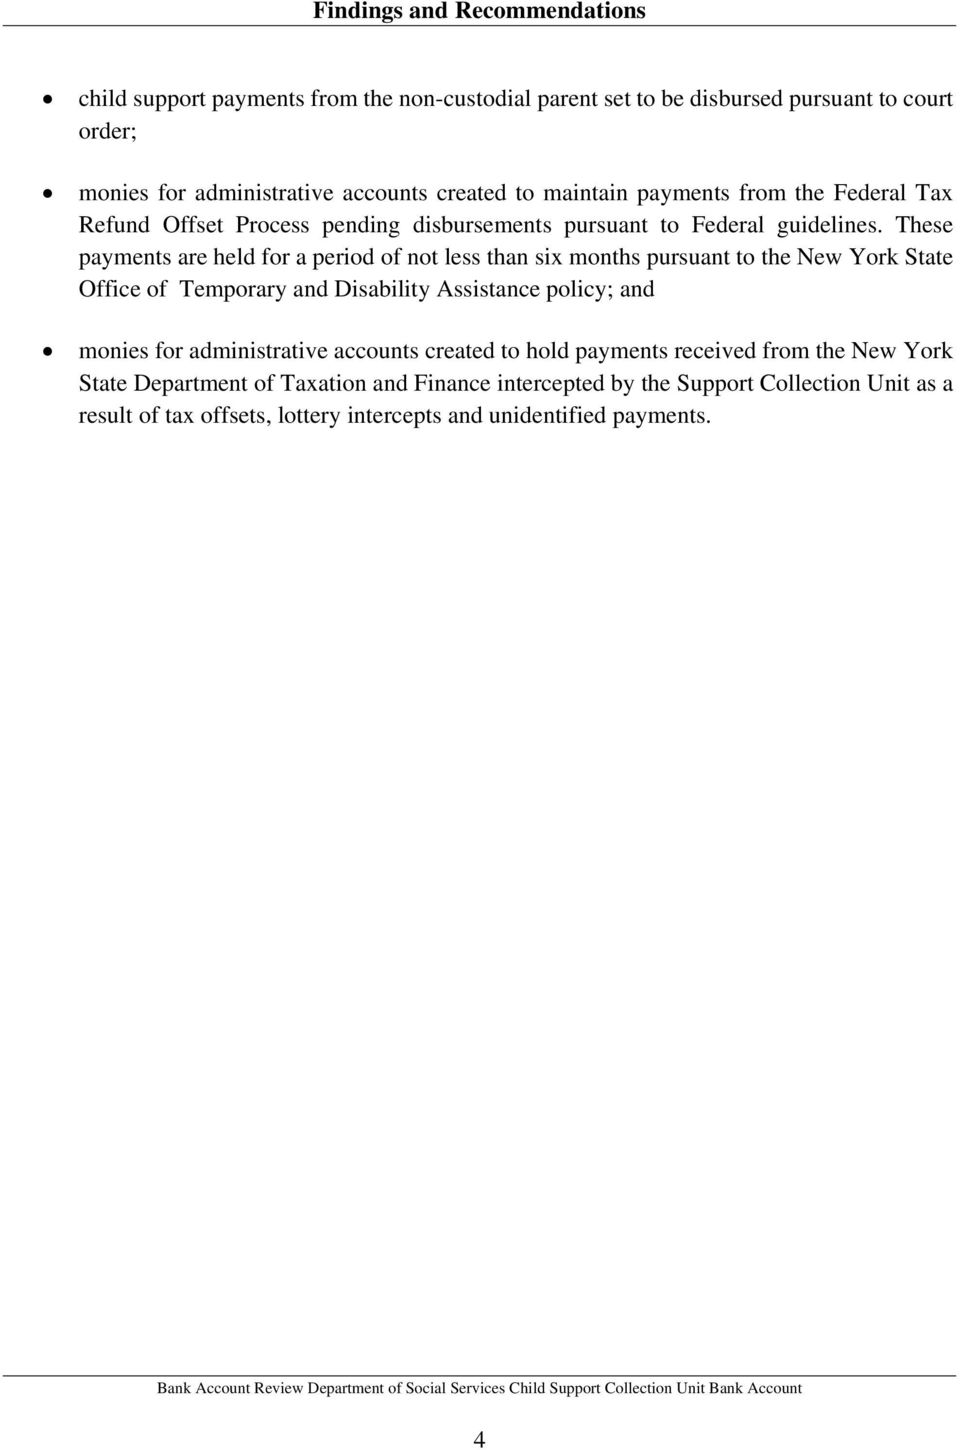 These payments are held for a period of not less than six months pursuant to the New York State Office of Temporary and Disability Assistance policy; and monies for